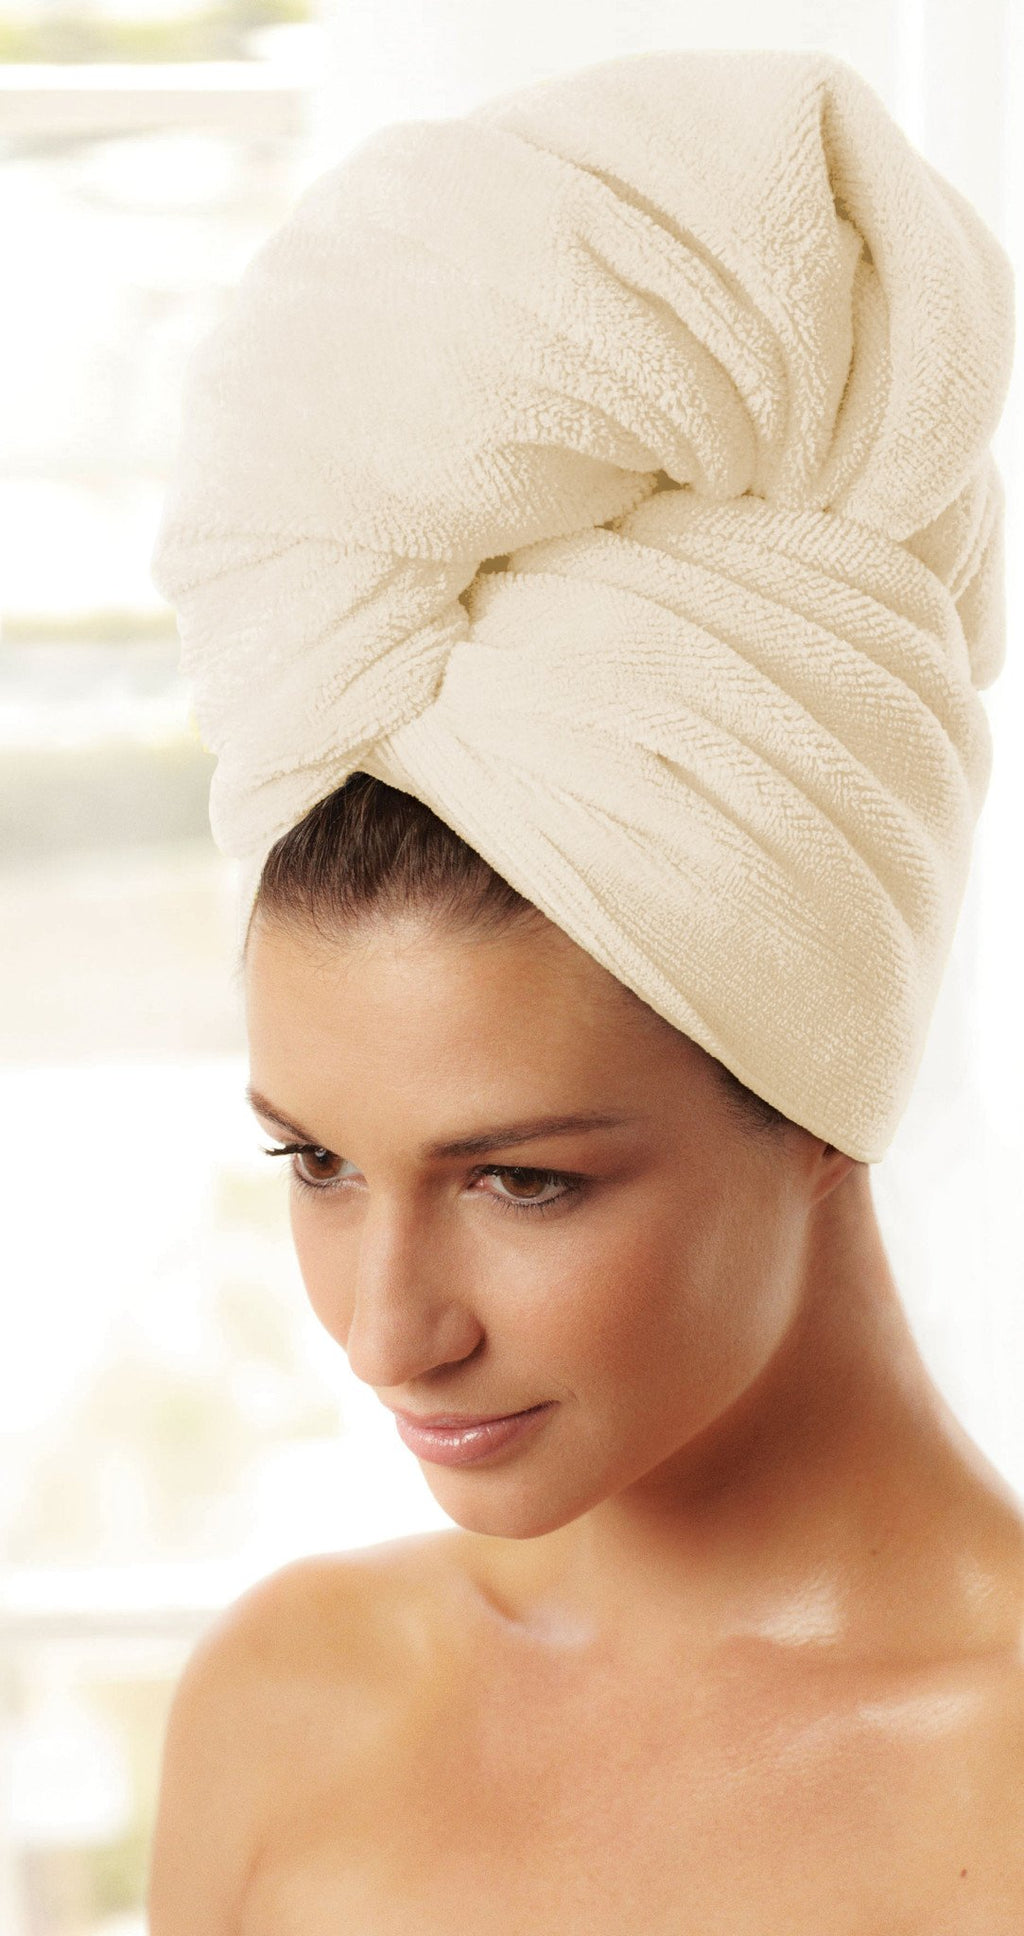 Hair Towel by YogaRat